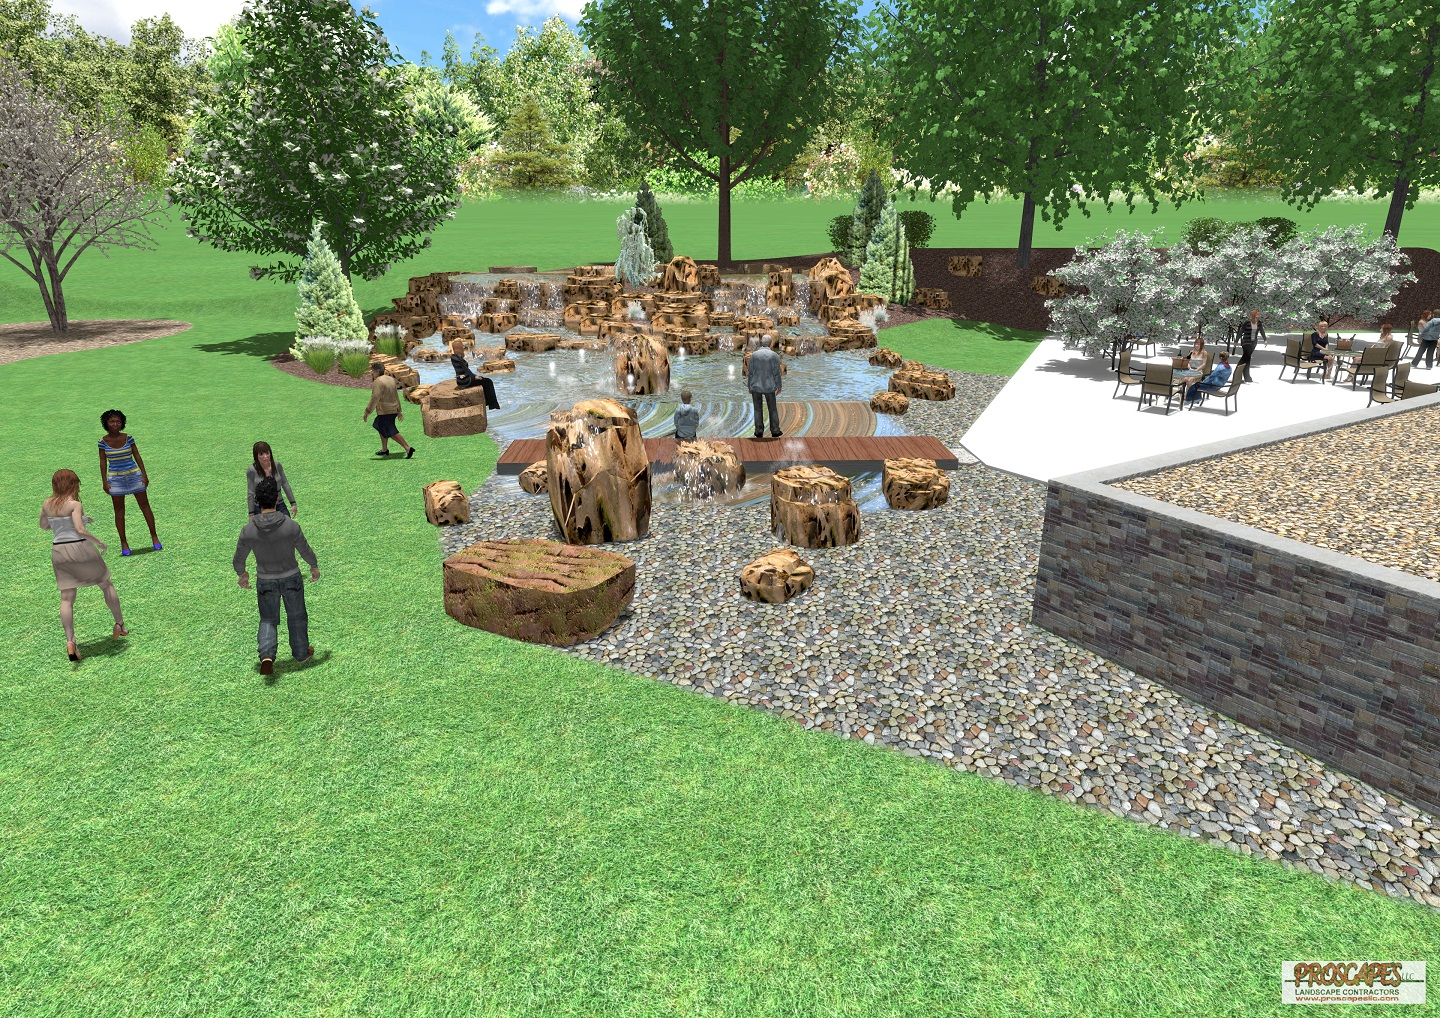 $200,000+ - Whatever your desire, we can create a magical landscape — whether you want to welcome visitors to your business or create the ultimate backyard retreat. This spectacular design features an aquatic wonderland with over 200 tones of weathered limestone, full color lighting system, remote pumps, 5 boulder fountains, and an IPE (Brazilian walnut) bridge.